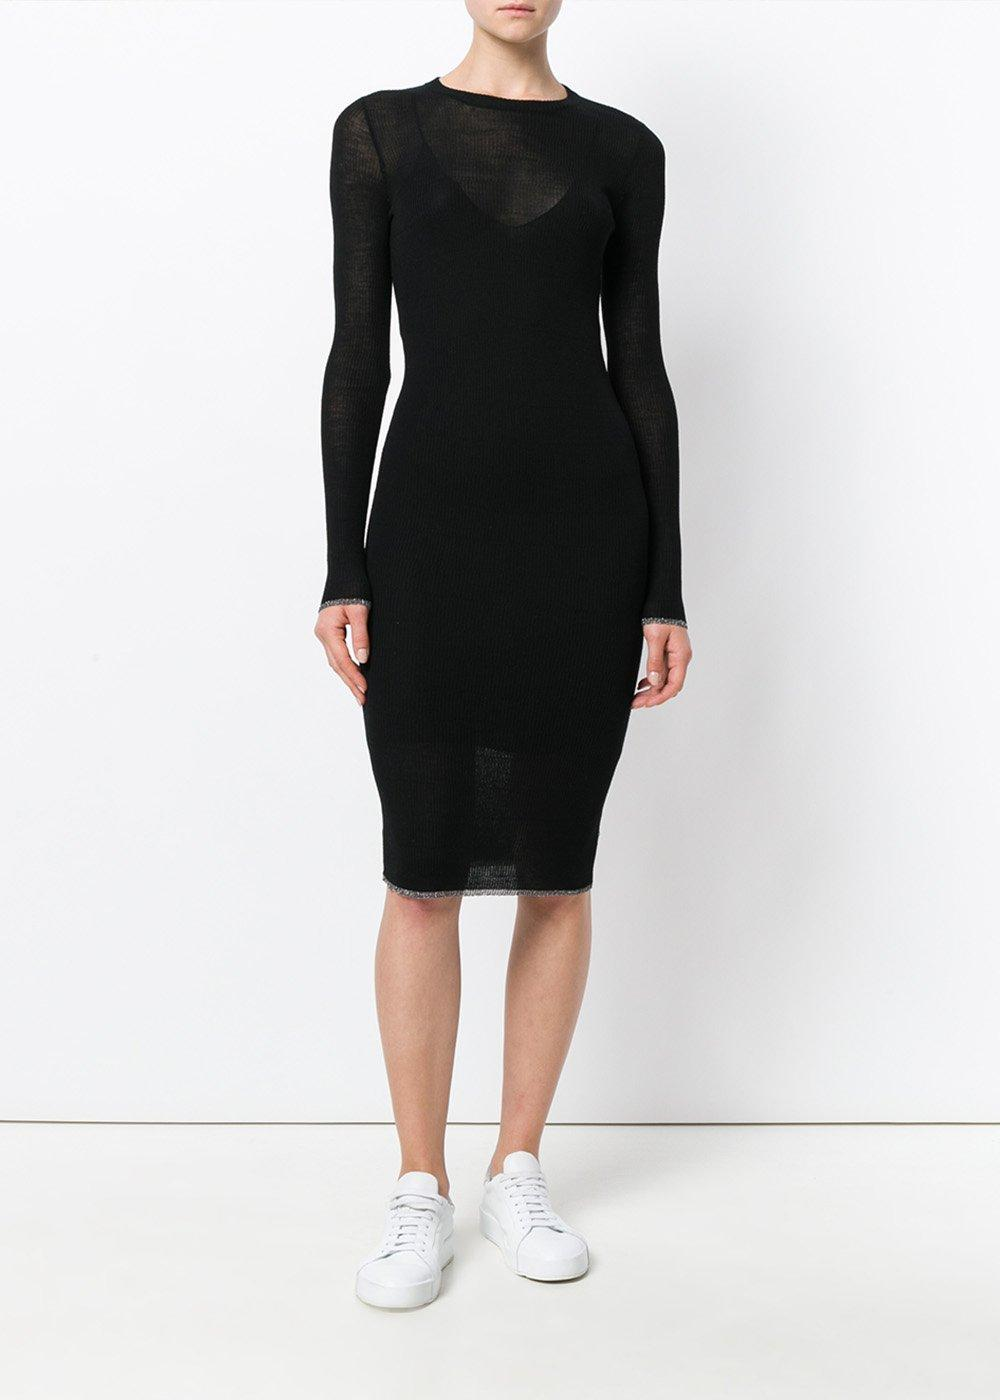 Tiera Sweater Dress - Large / Black